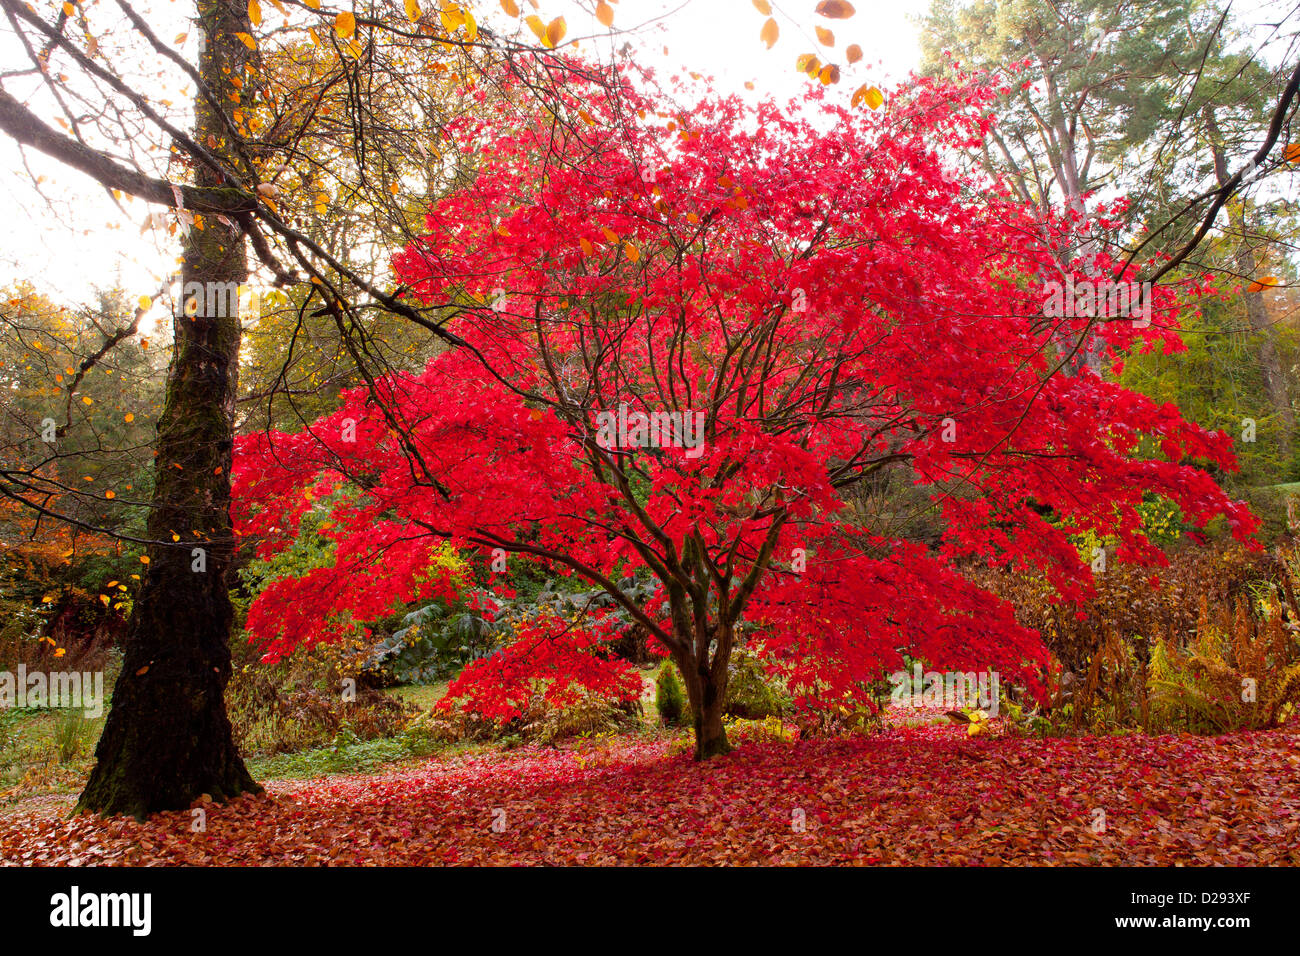 Japanese Maple Acer Palmatum Tree In A Woodland Garden